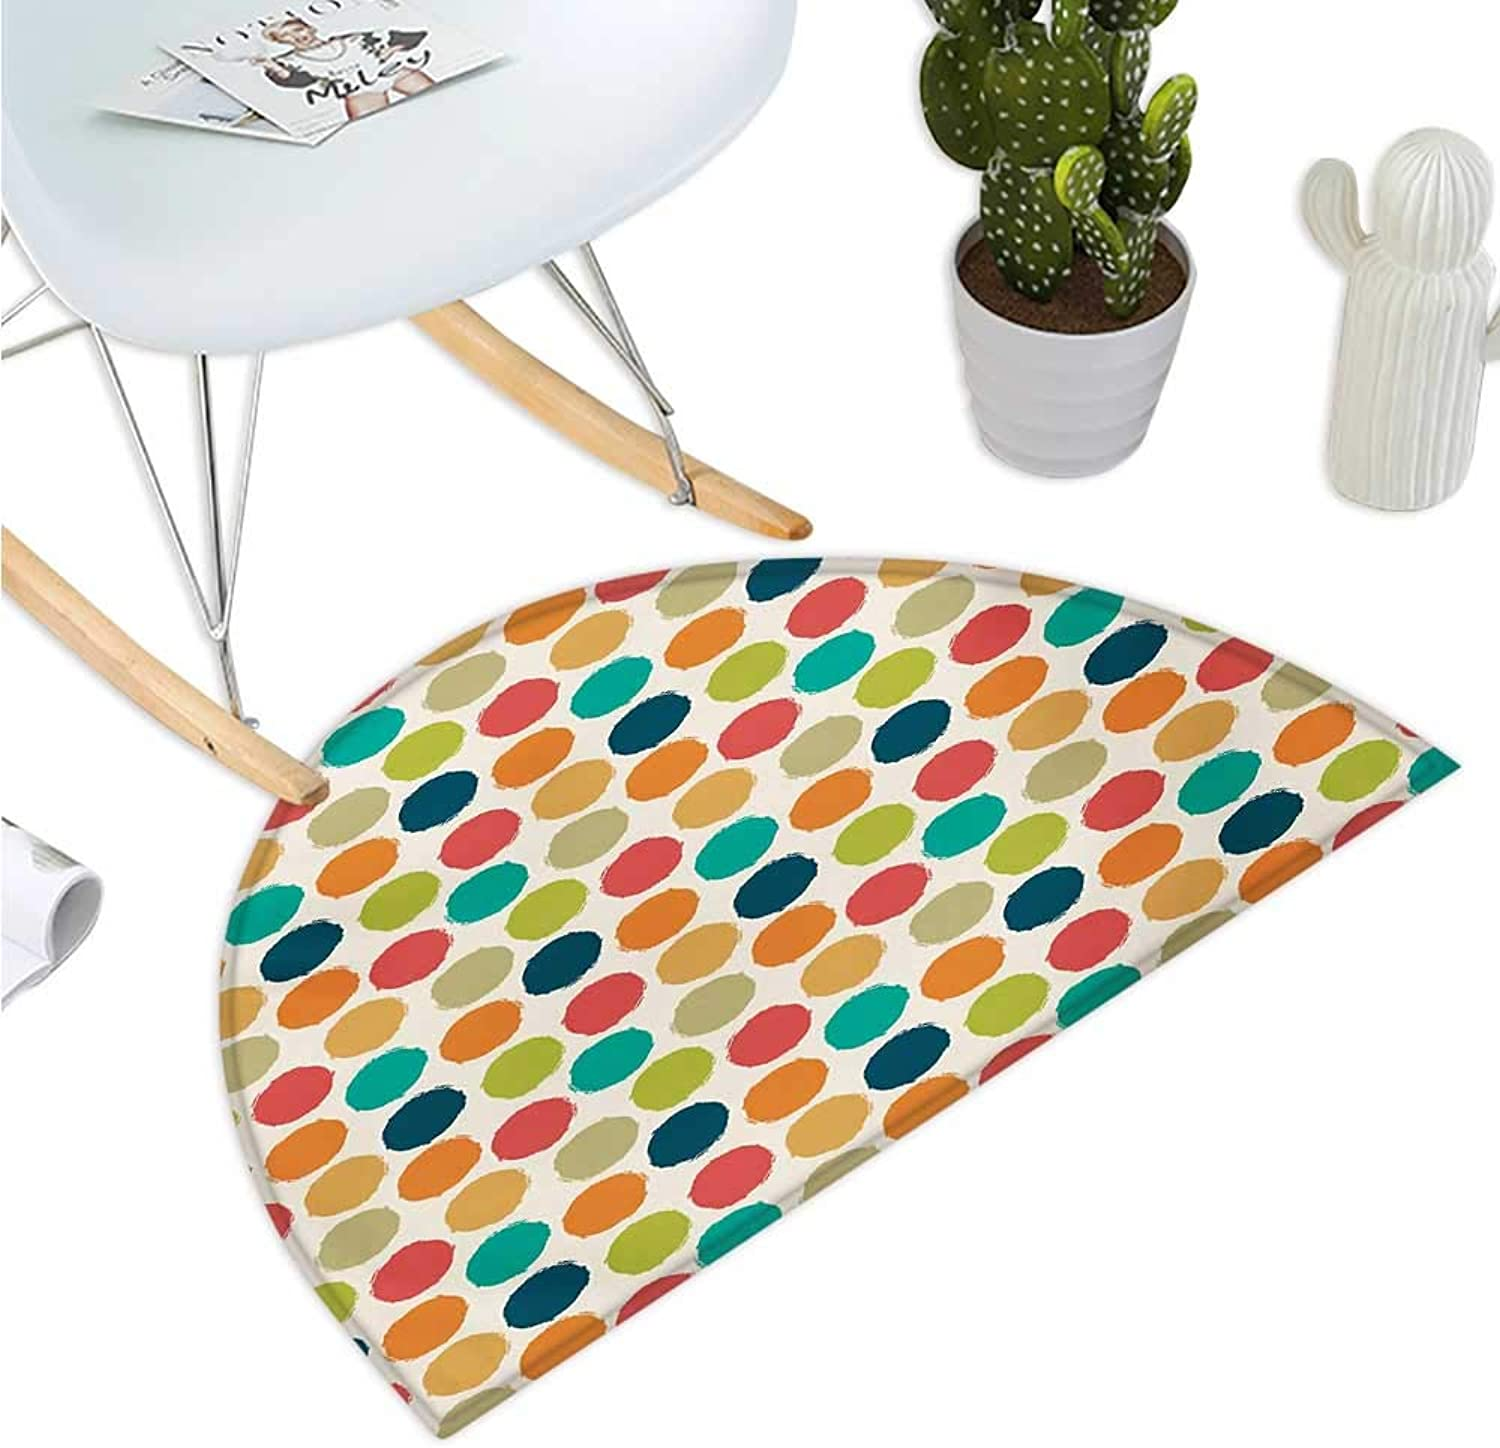 Retro Half Round Door mats Hipster Design Soft colord Big Polka Dots Pattern Vintage Style Spotted Graphic Bathroom Mat H 39.3  xD 59  Multicolor